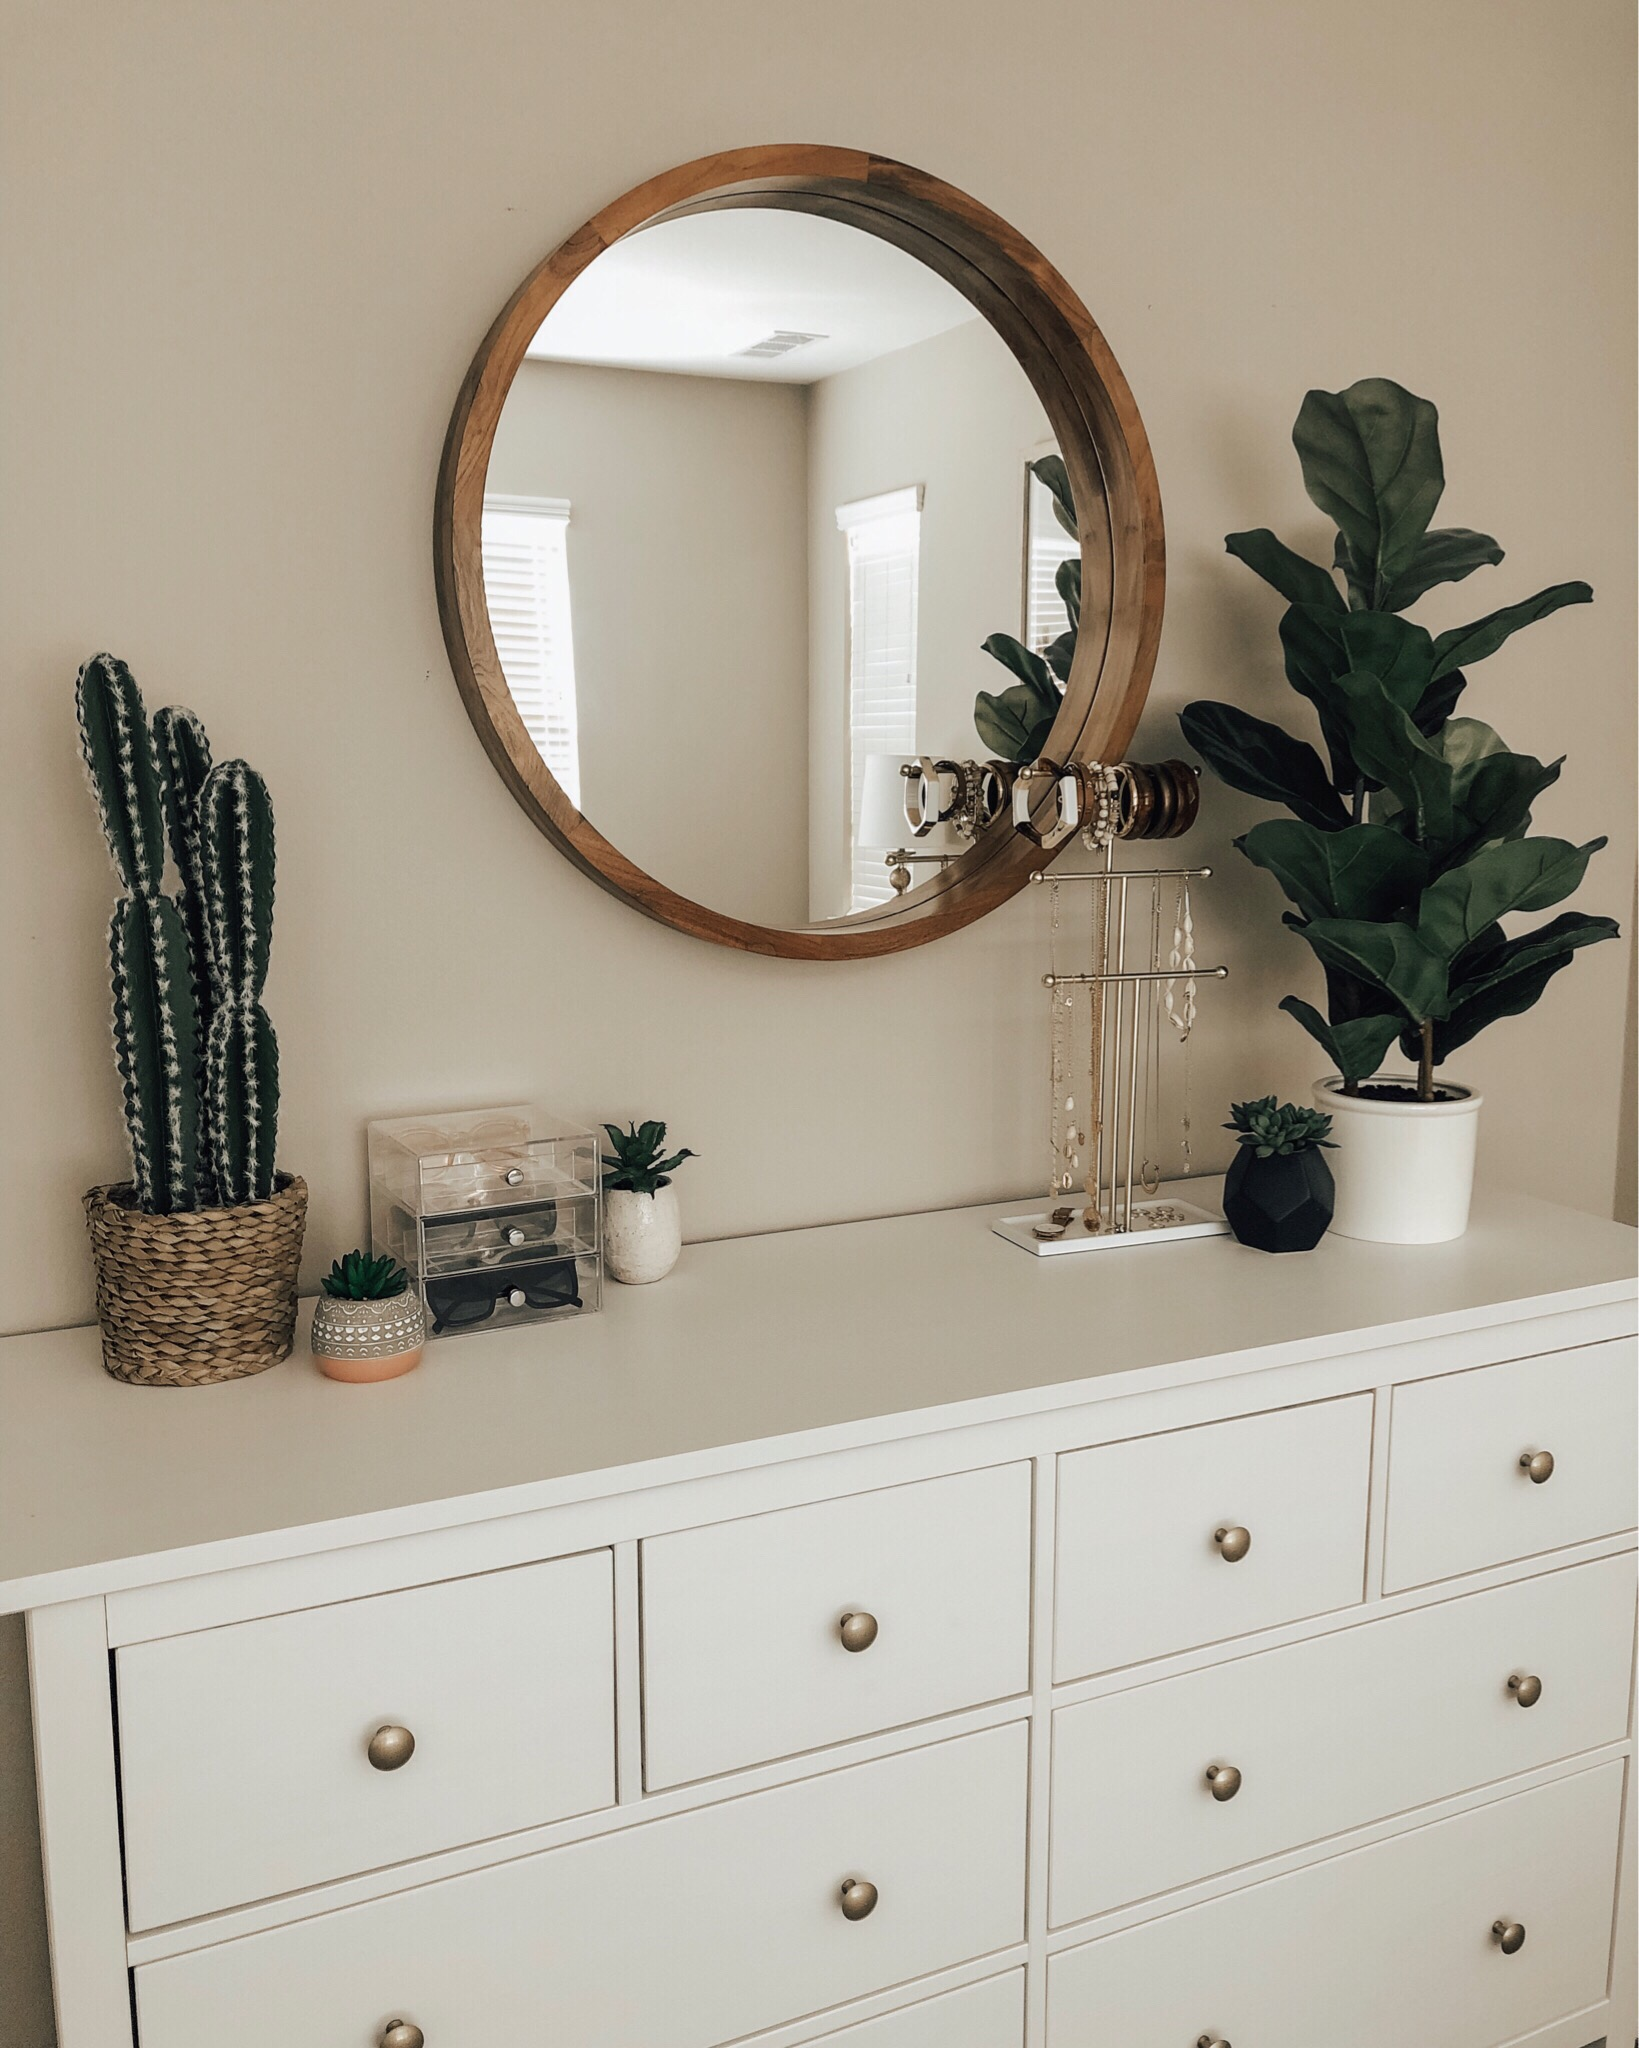 STOCK UP WITH THE 2-DAY TARGET HOME SALE- Jaclyn De Leon Style+ Need a Spring home refresh? Target is having one of their best home sales and it's time to get your home ready for a new season. Tons of faux plants, pillows, wall art, baskets, furniture and so much more